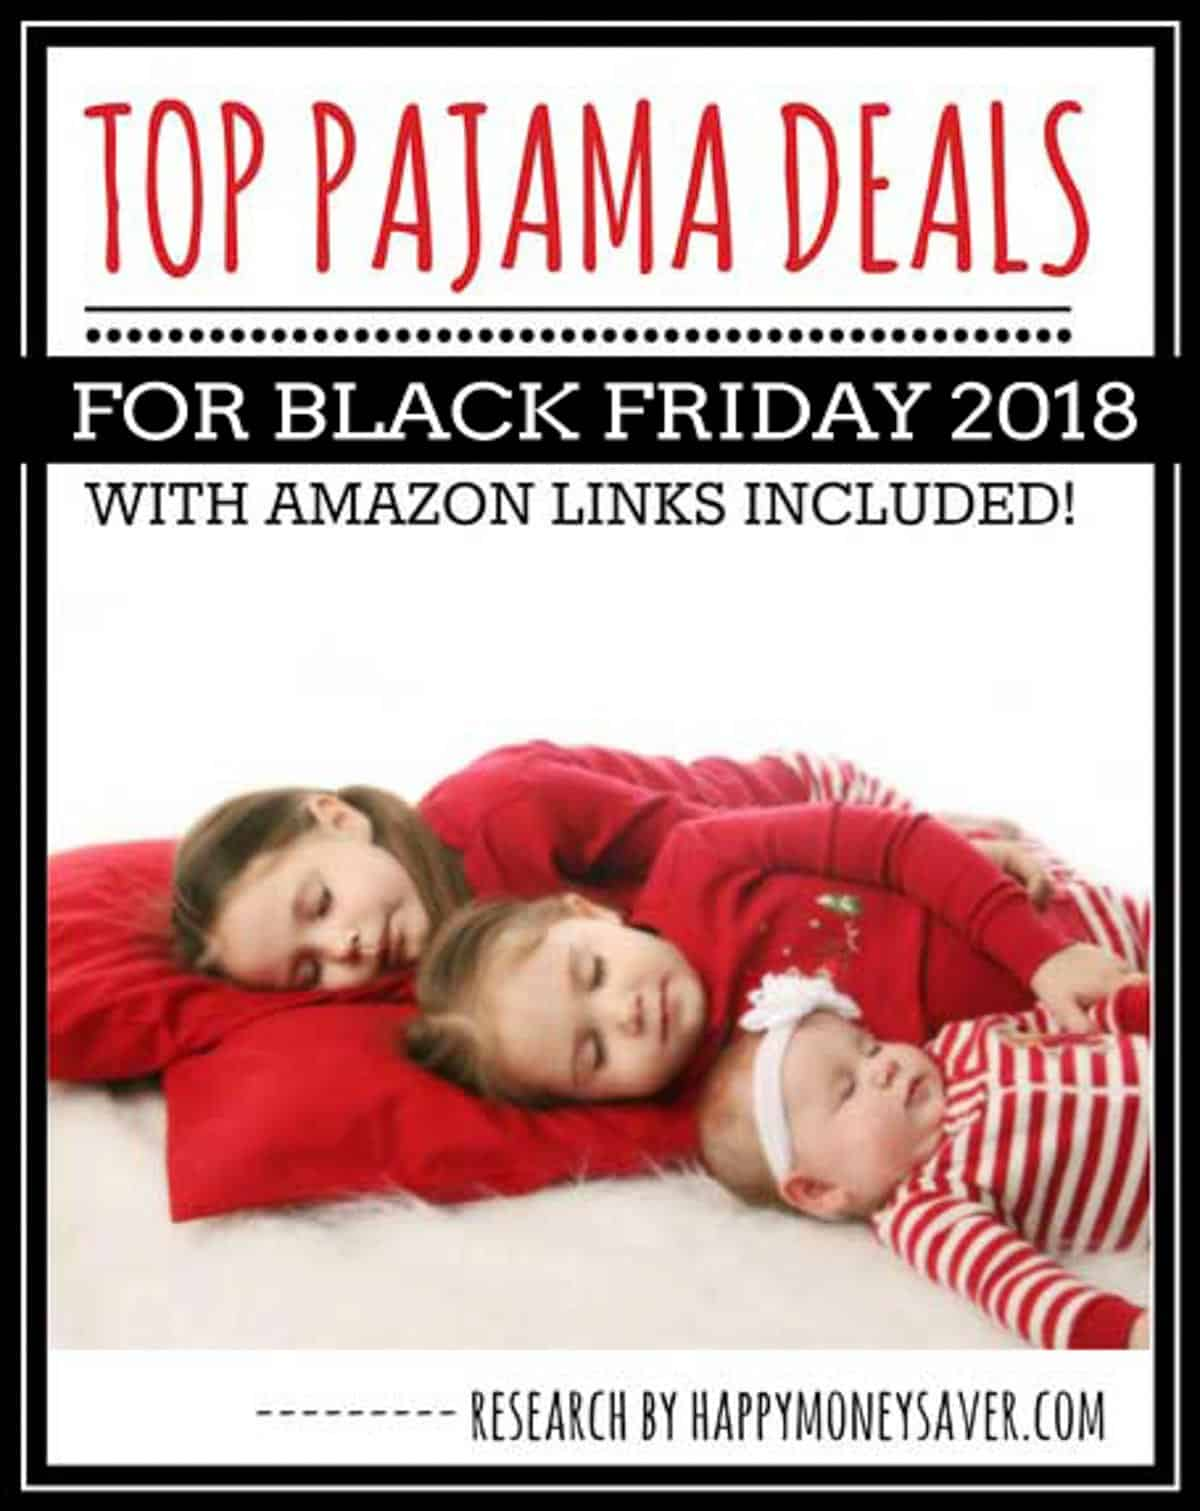 Here is a deal round up of all the top Pajamas Black Friday 2018 - sure to make any parent thrilled to save money!